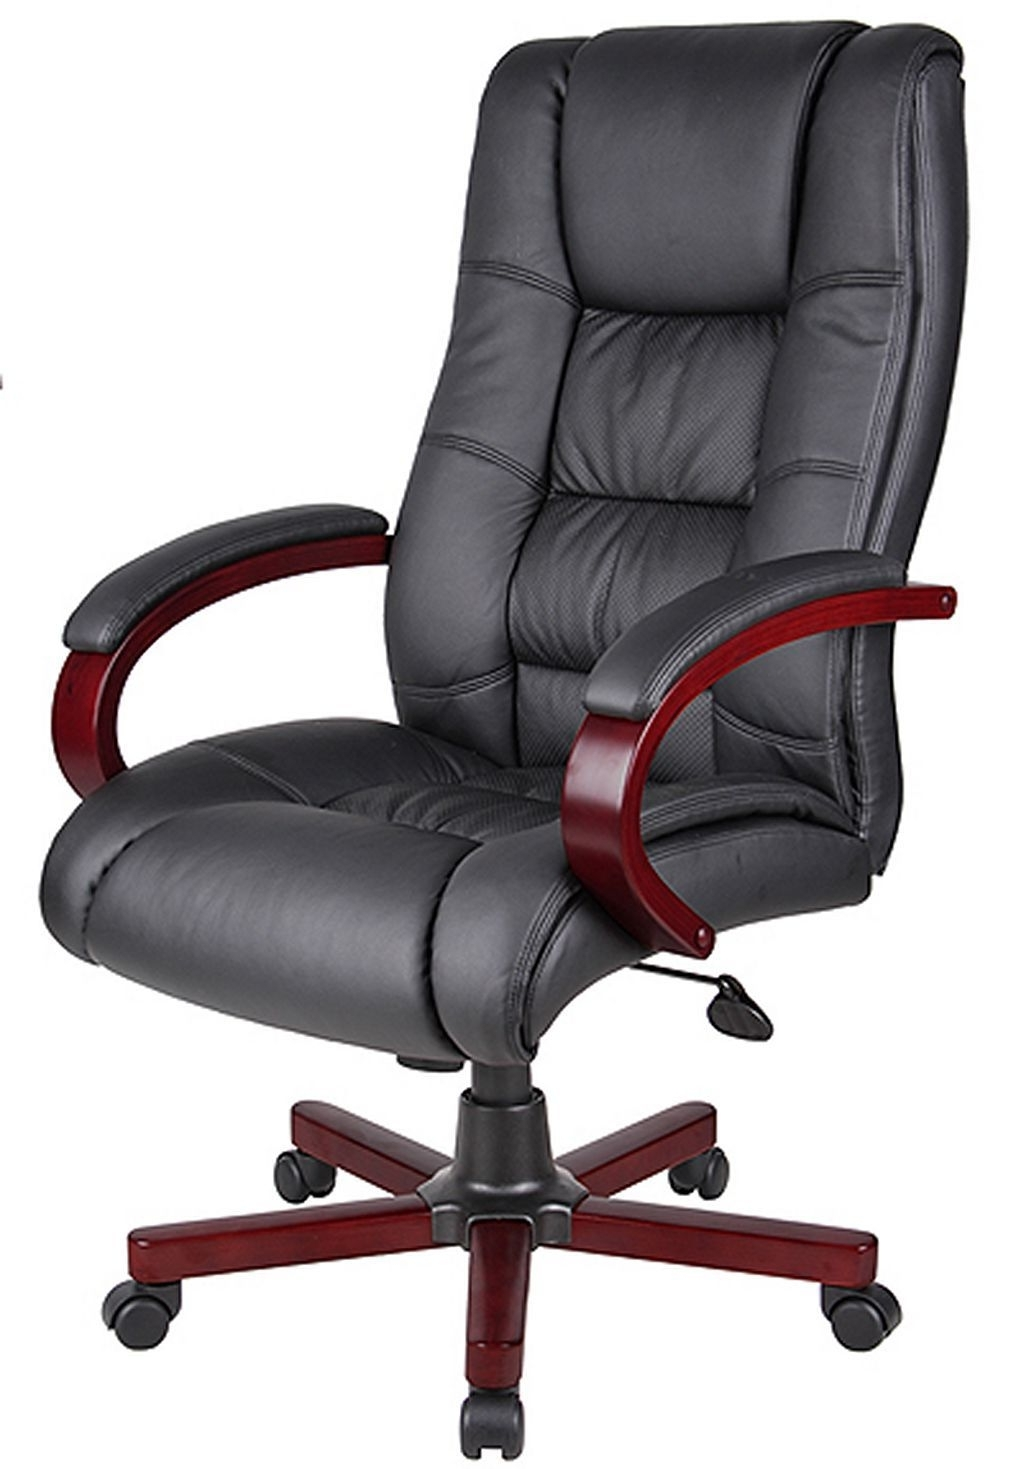 Preferred Lane Executive Office Chairs Intended For Office Chair Design Elegant Black Design – Home Design Inspiration (View 12 of 20)